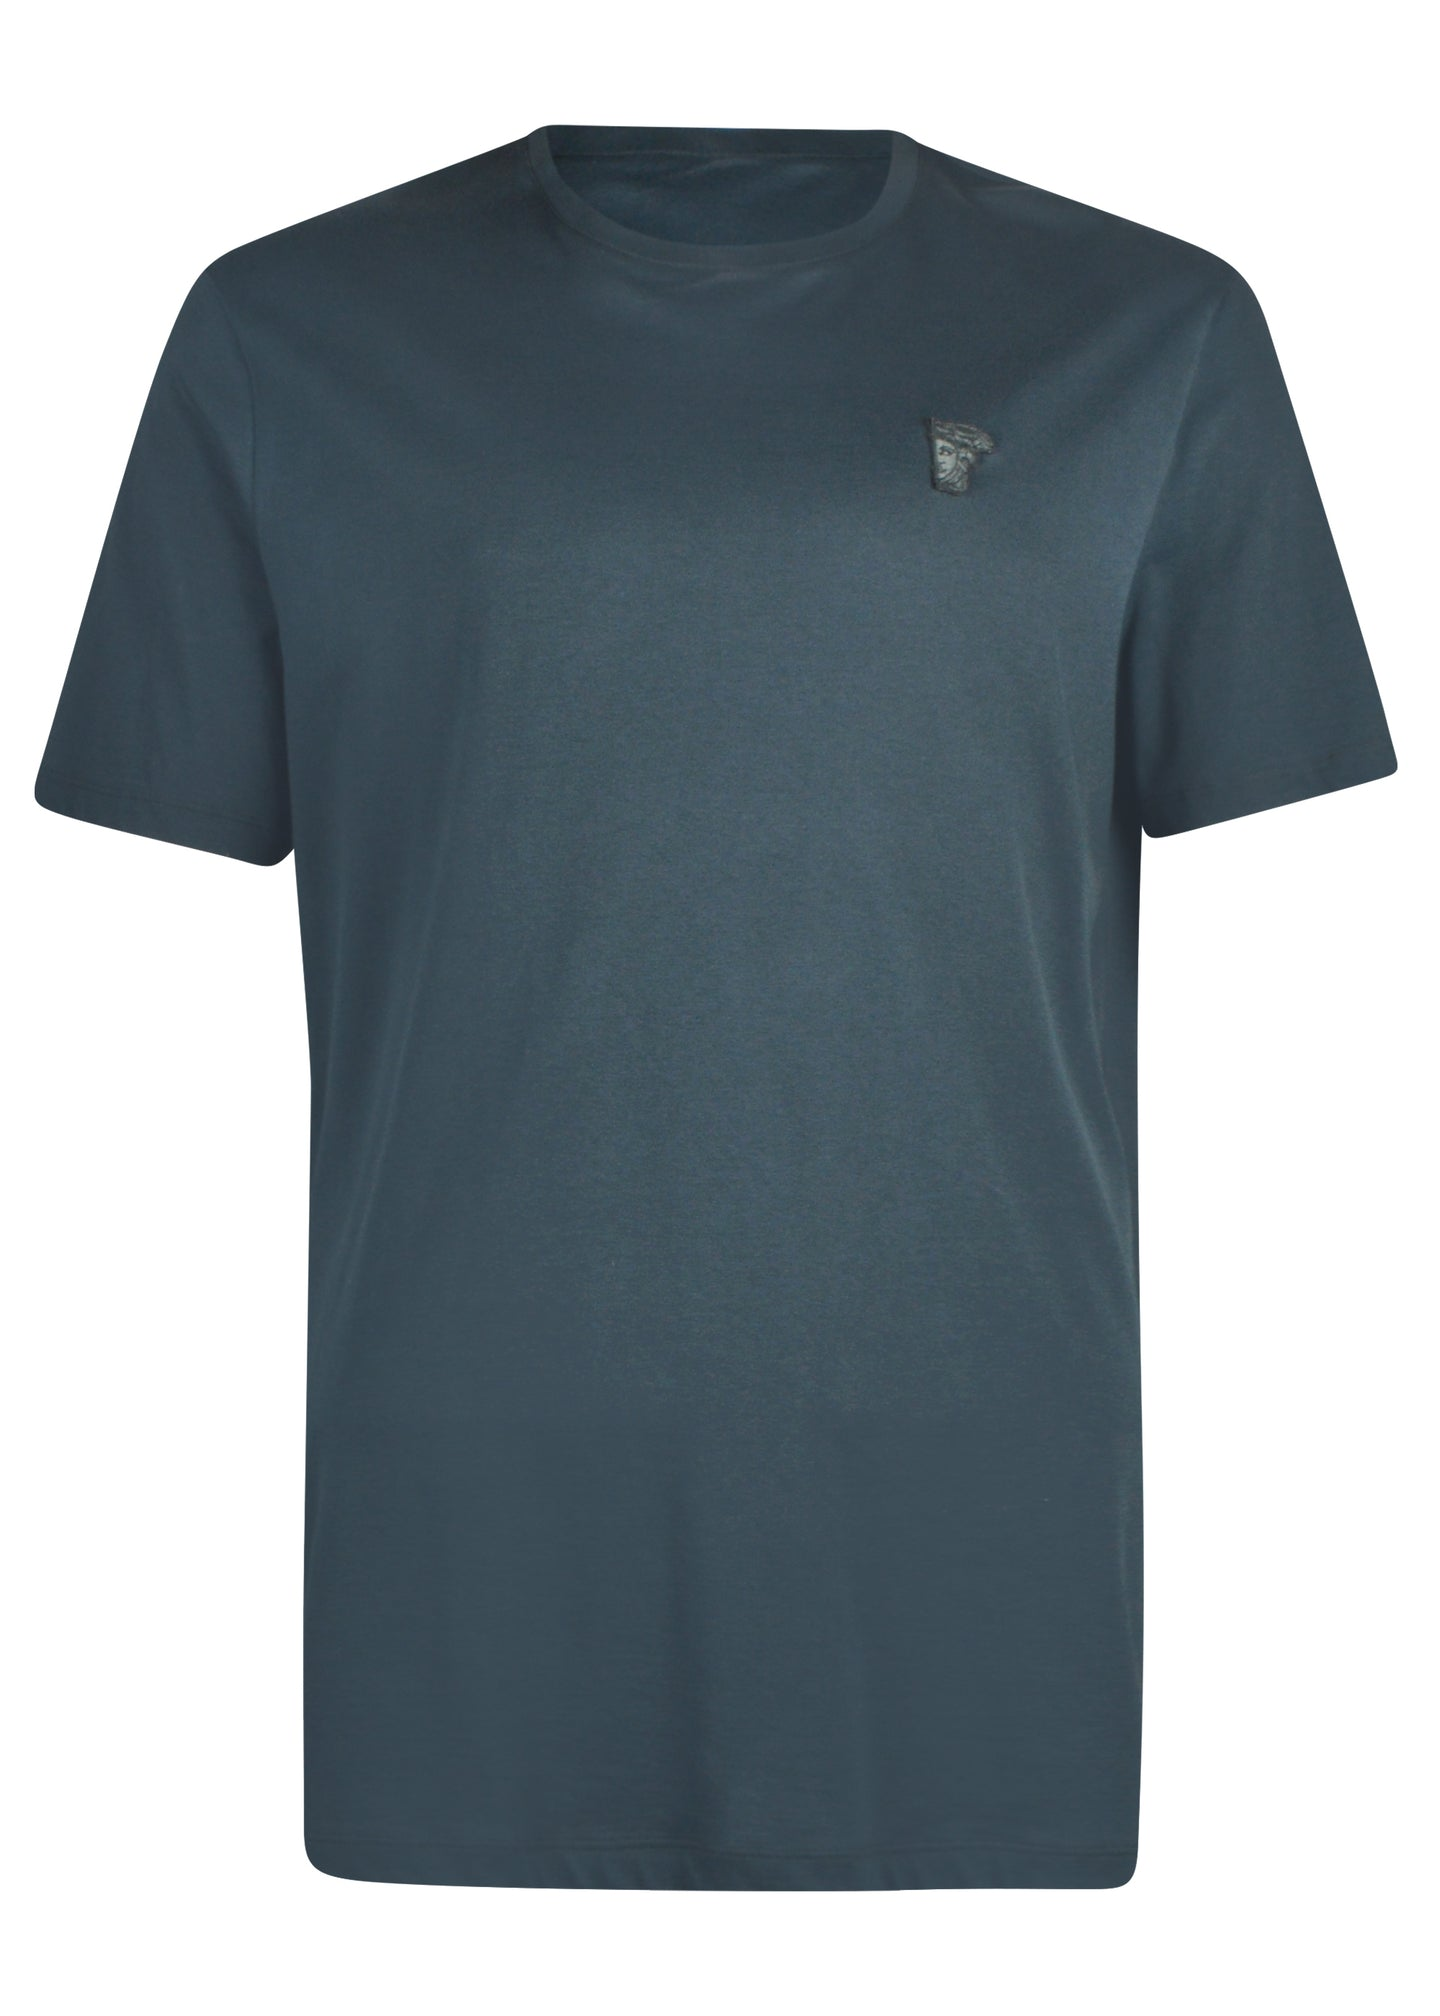 Versace Collection - Short Sleeve Iconic Half Medusa T-Shirt - V800683 - Grey